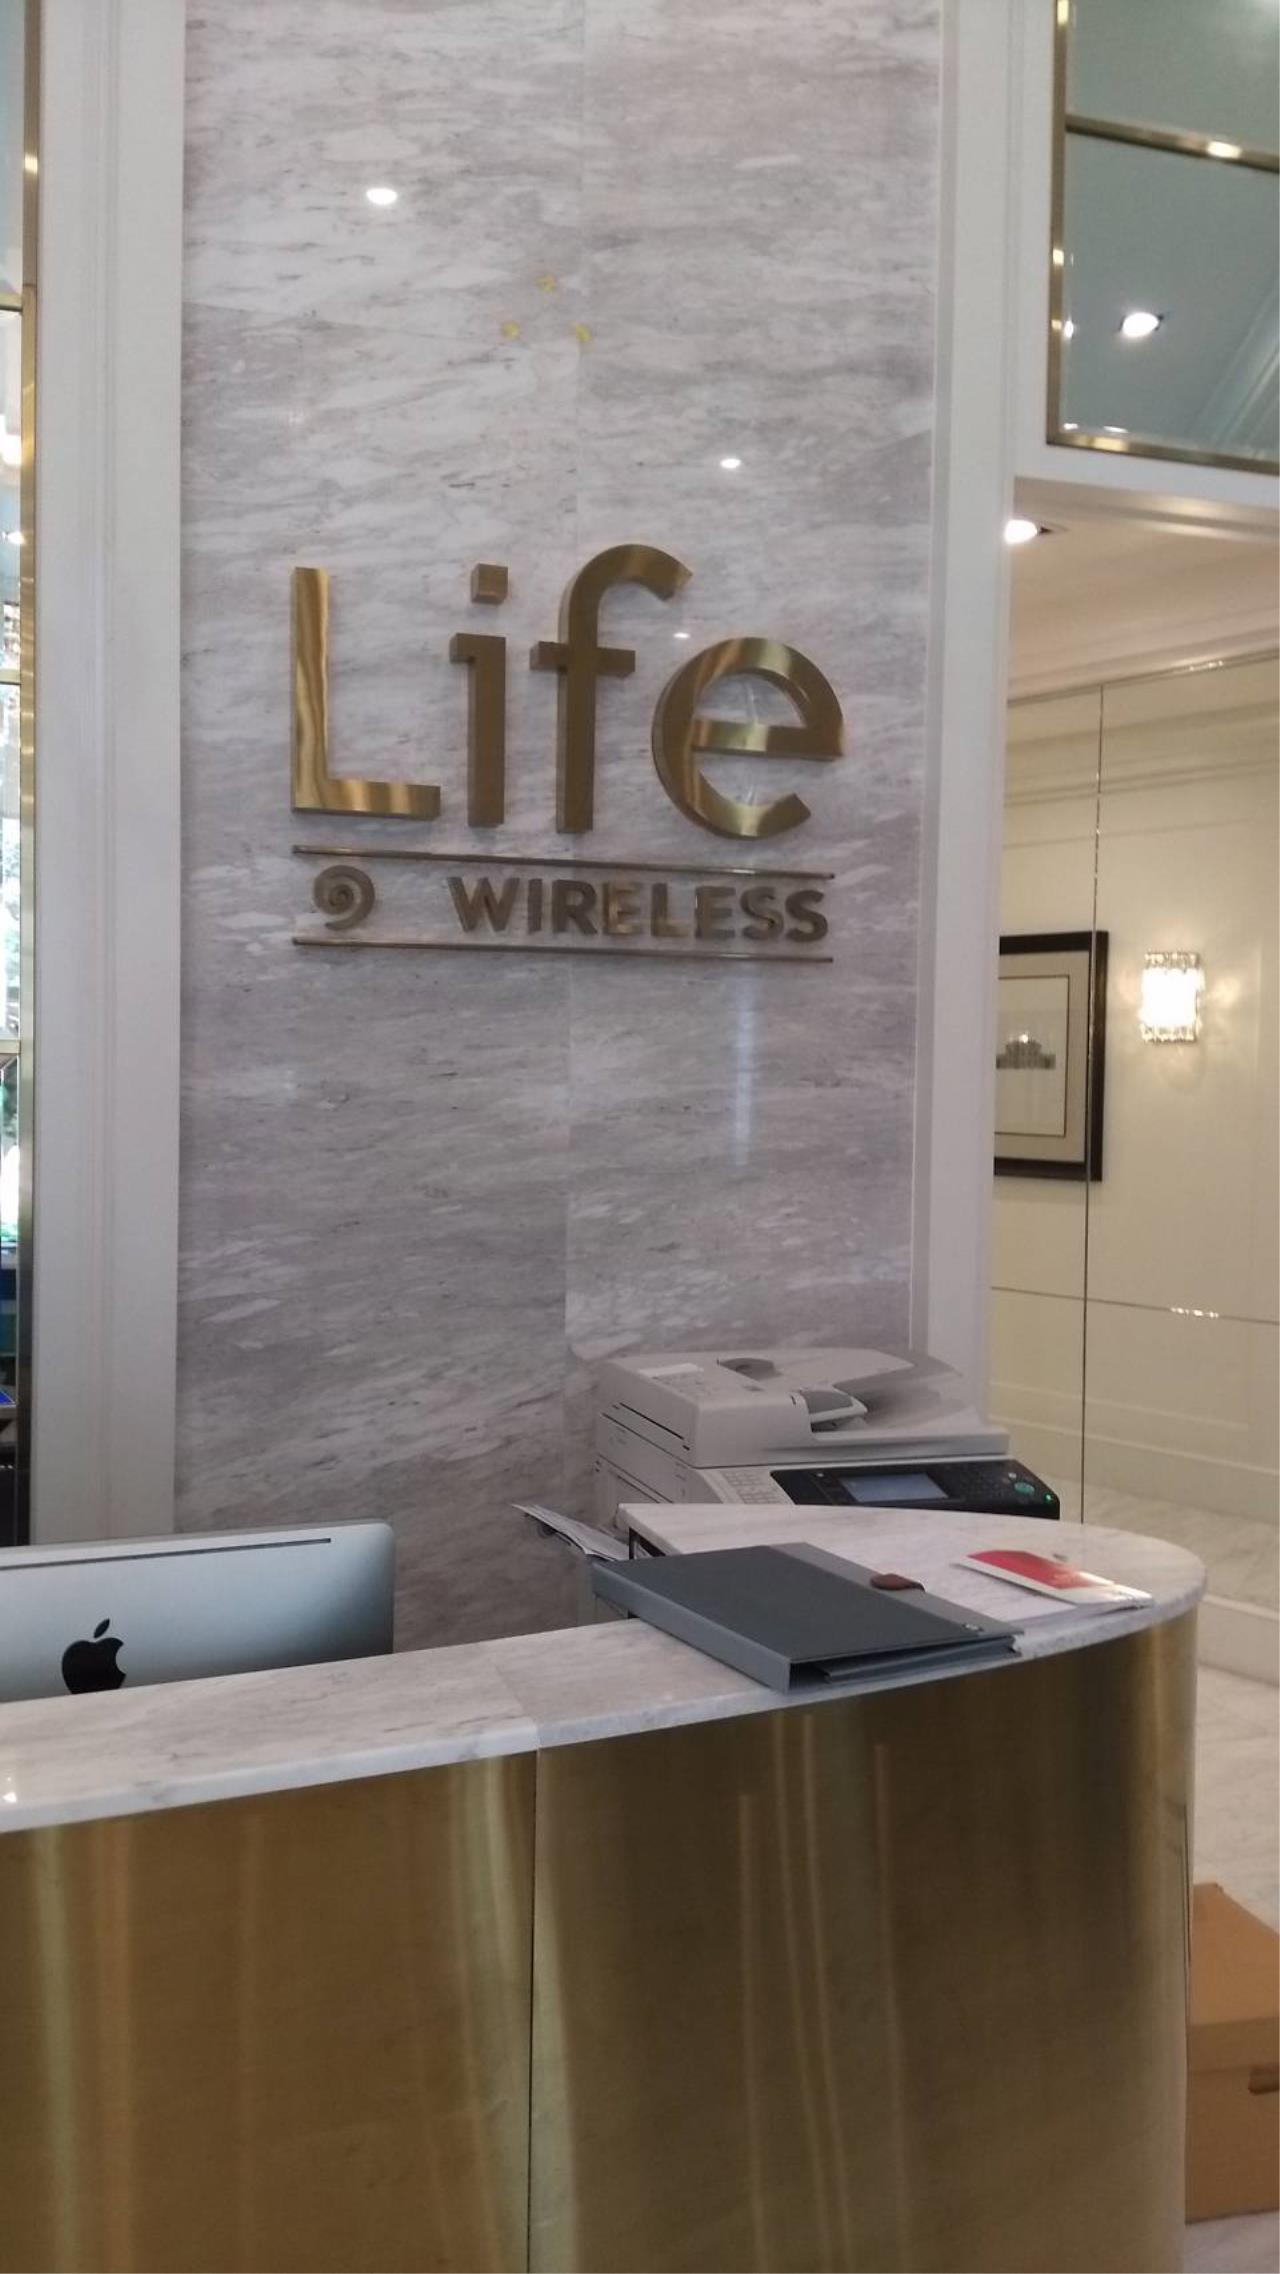 Quality Life Property Agency's Condo For Sale!!! Life One Wireless / 1 Bedroom / 21 Floor 1